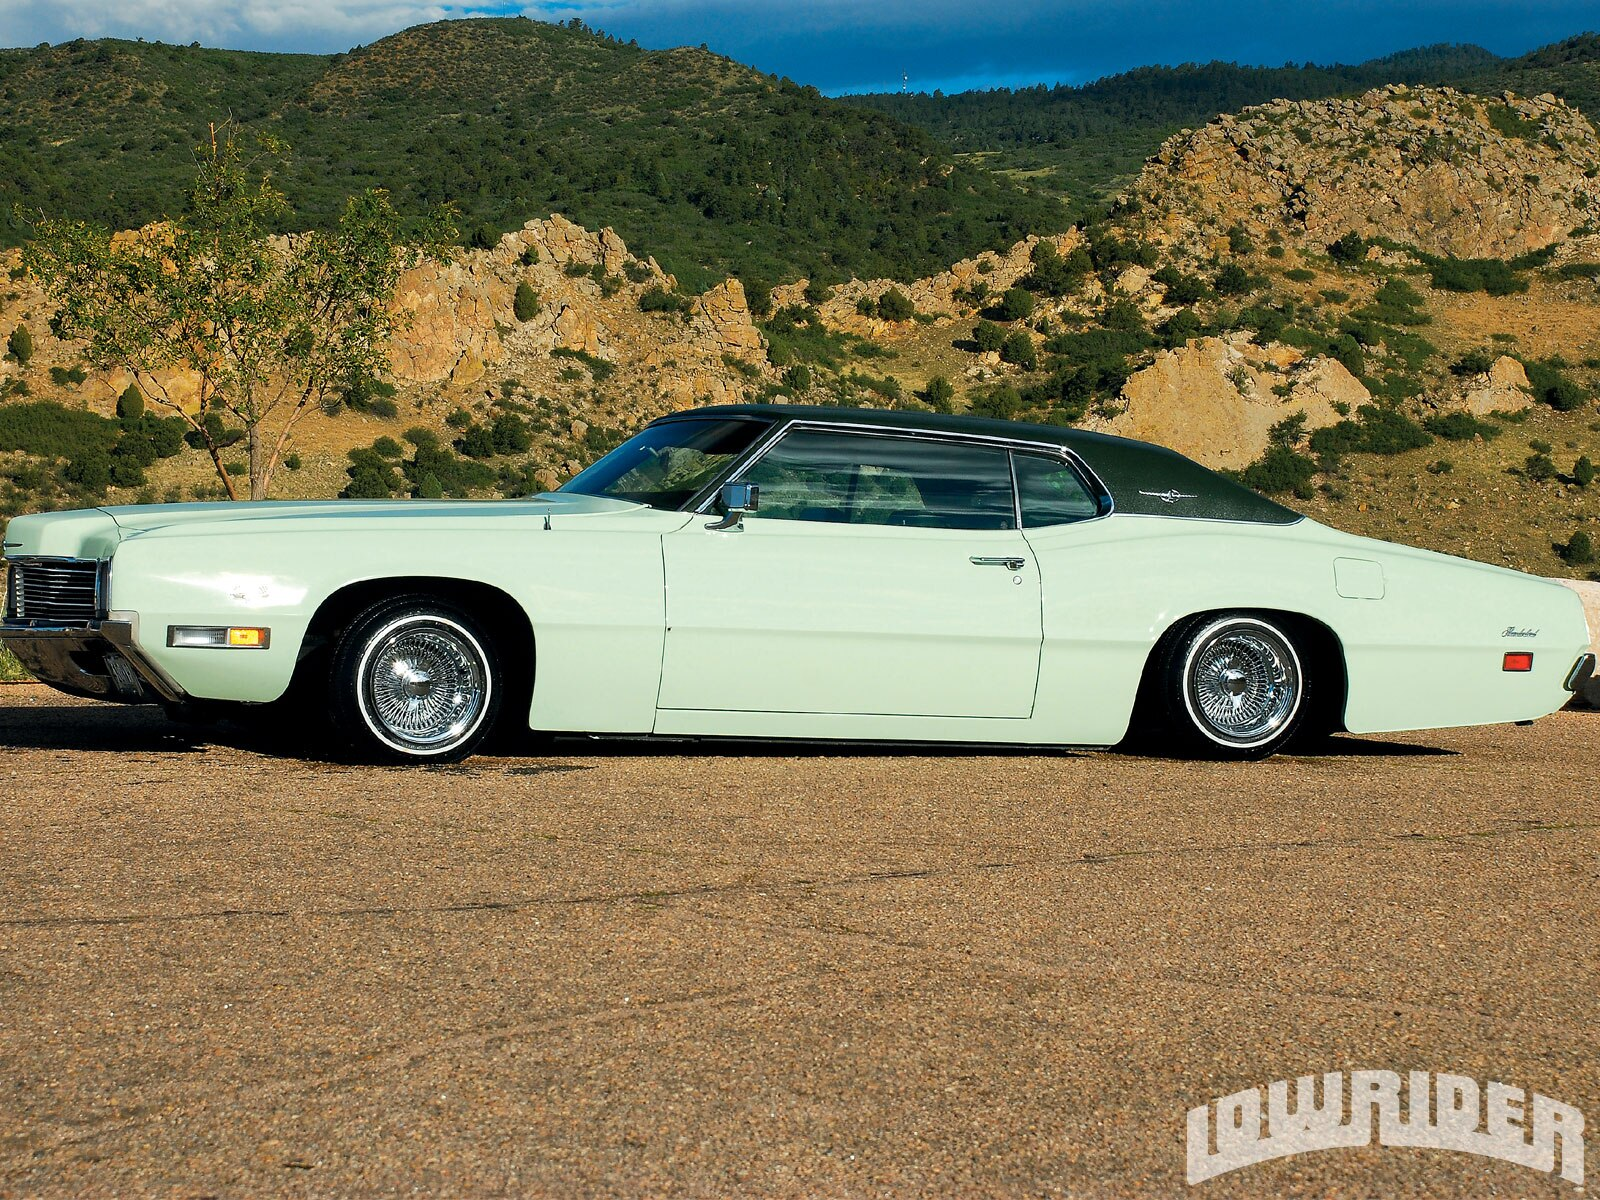 lrmp_1101_02_o-1971_ford_thunderbird-side_view2